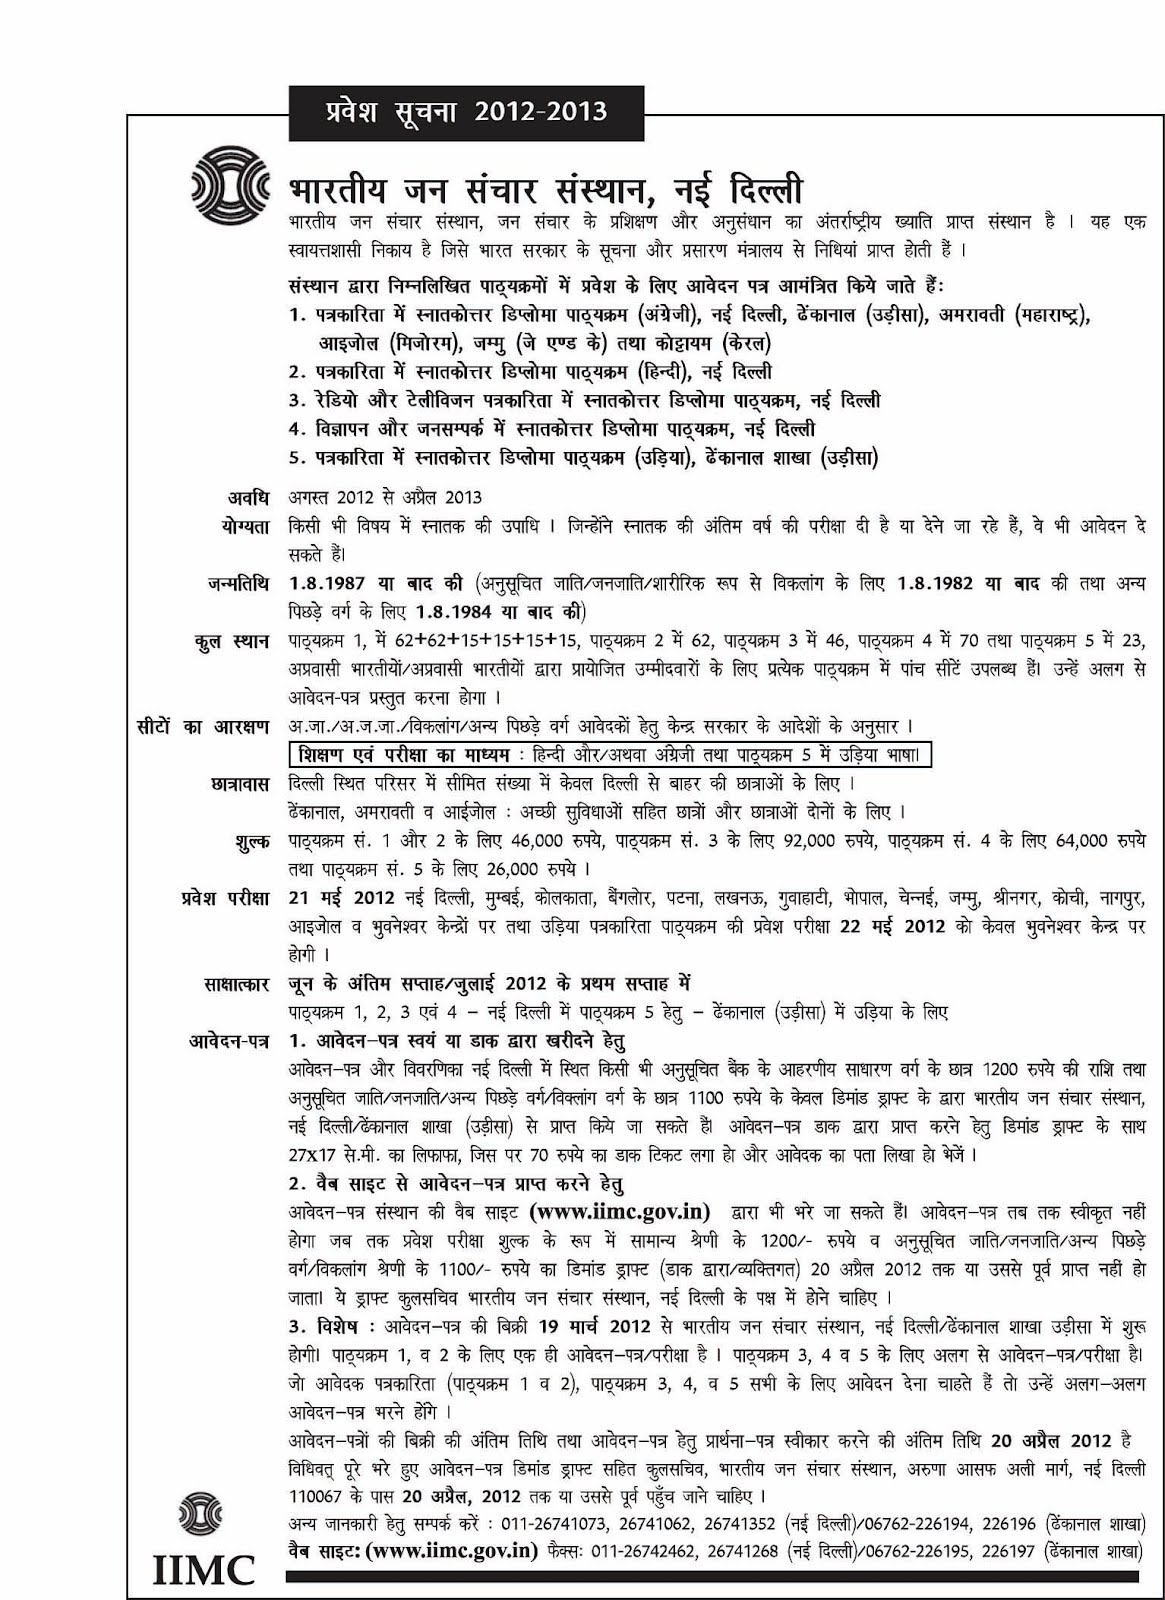 language essay essay on corruption in hindi language essay topics  essays on language buy original essays online essay on terrorism in hindi language expert school buy